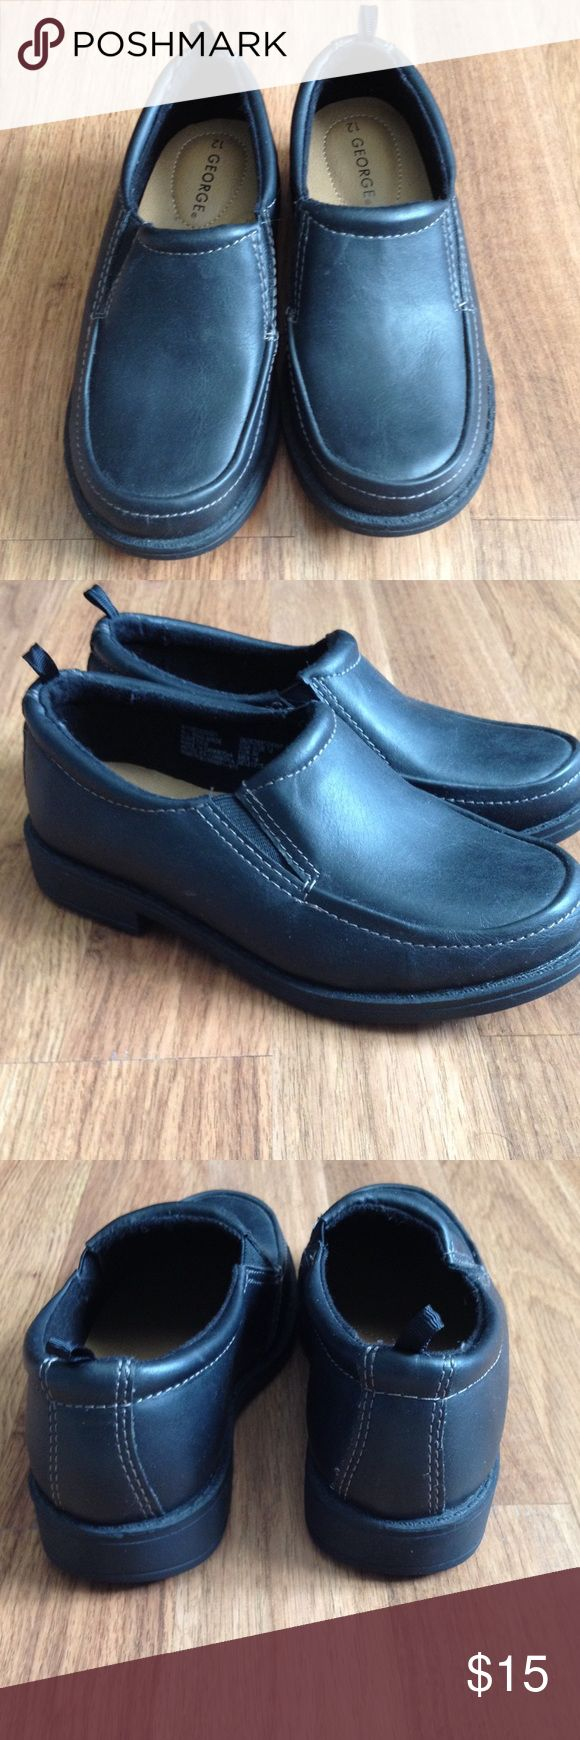 NWOT toddle boys dress shoes. Son never wore these, NWOT black dress shoes. George Shoes Dress Shoes